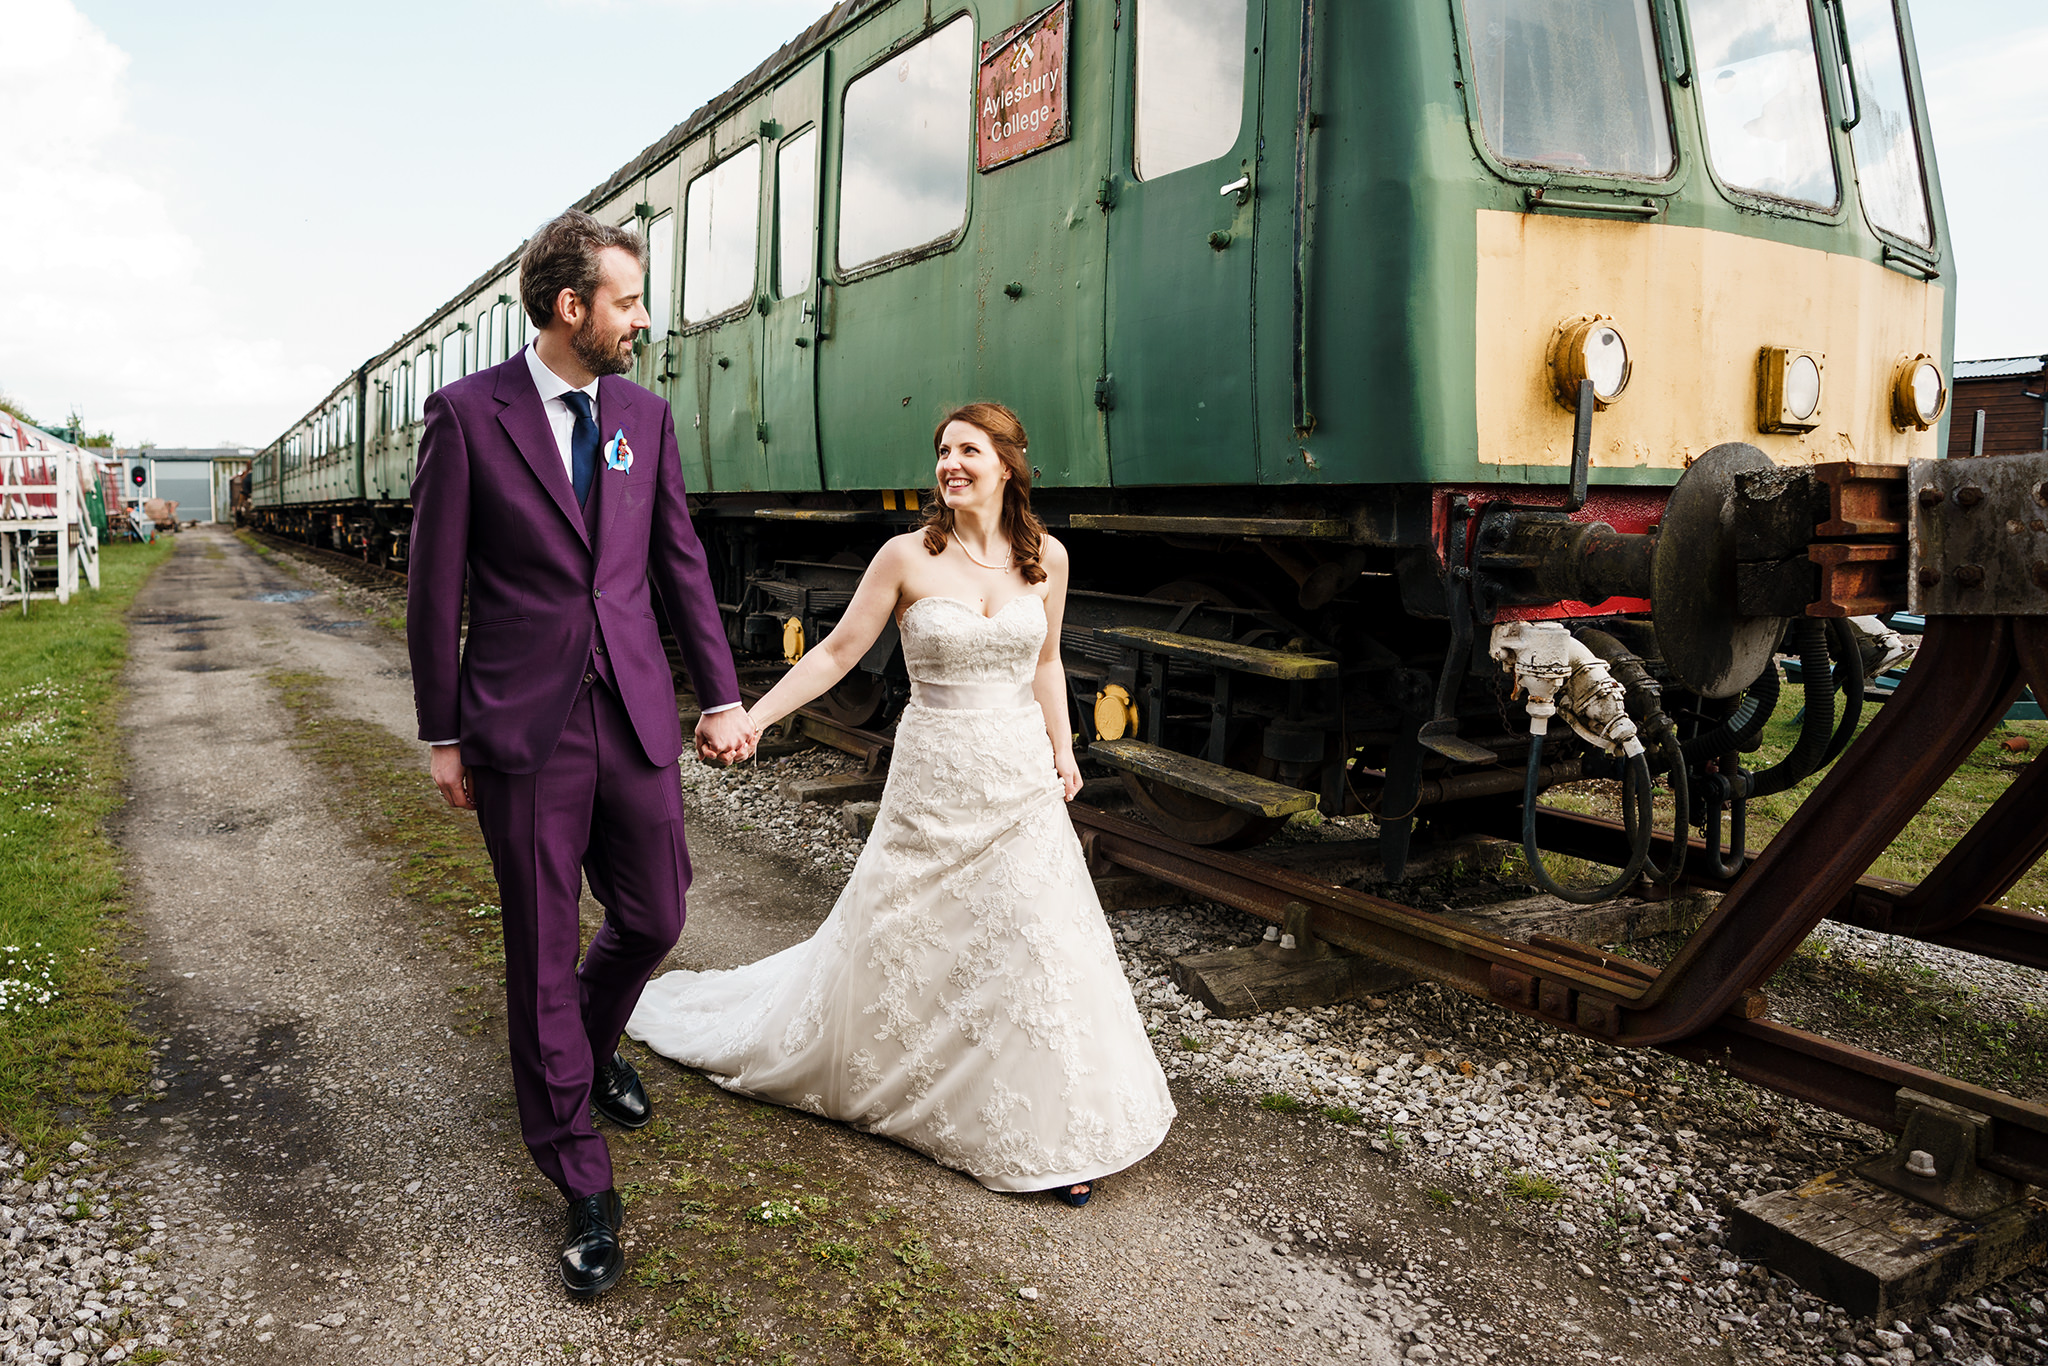 Laura and Edward - Buckinghamshire Railway Centre